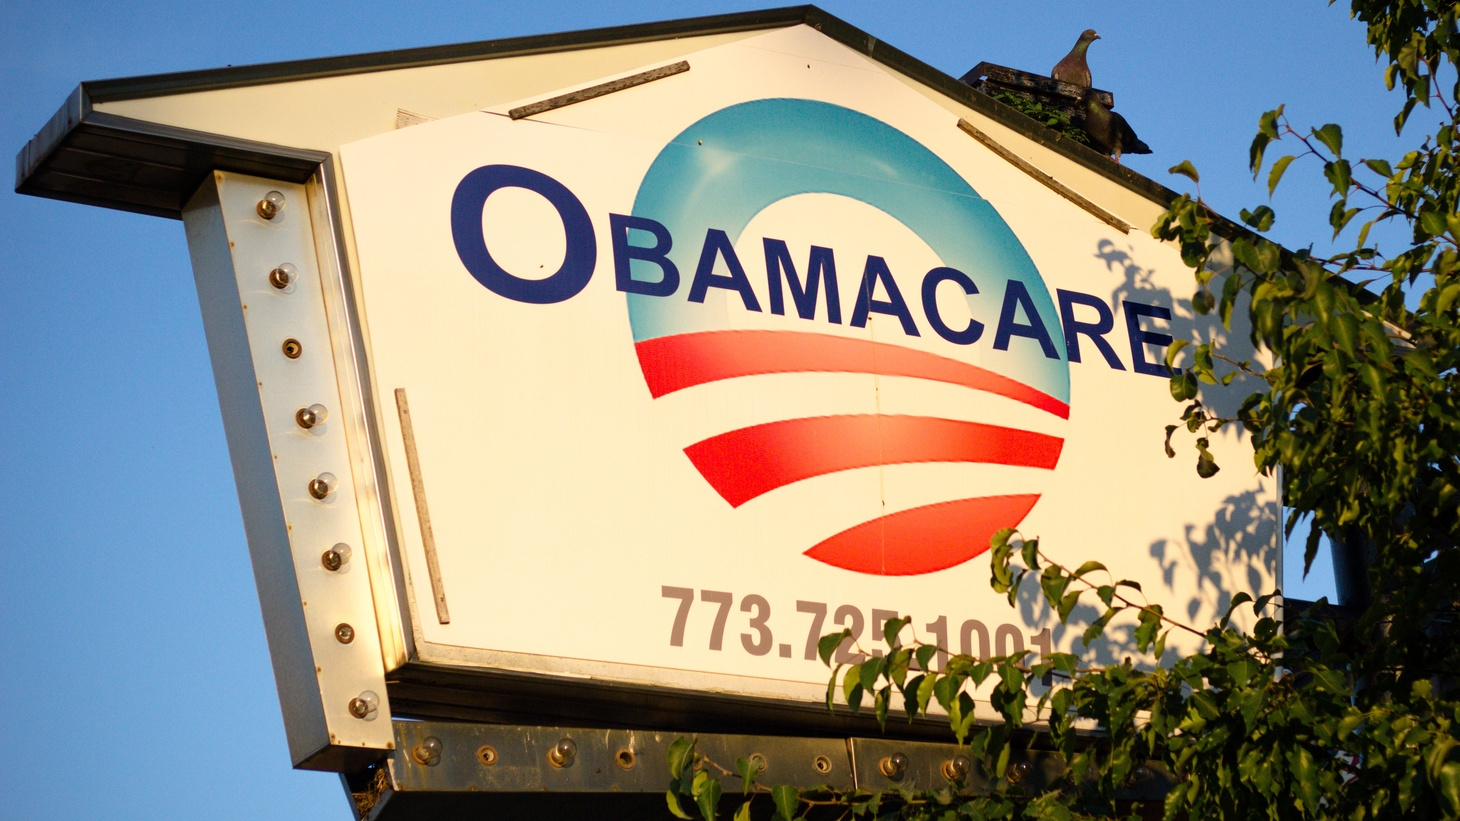 A sign for Obamacare is seen in Chicago, Illinois. Today the Supreme Court justices upheld the health care law.